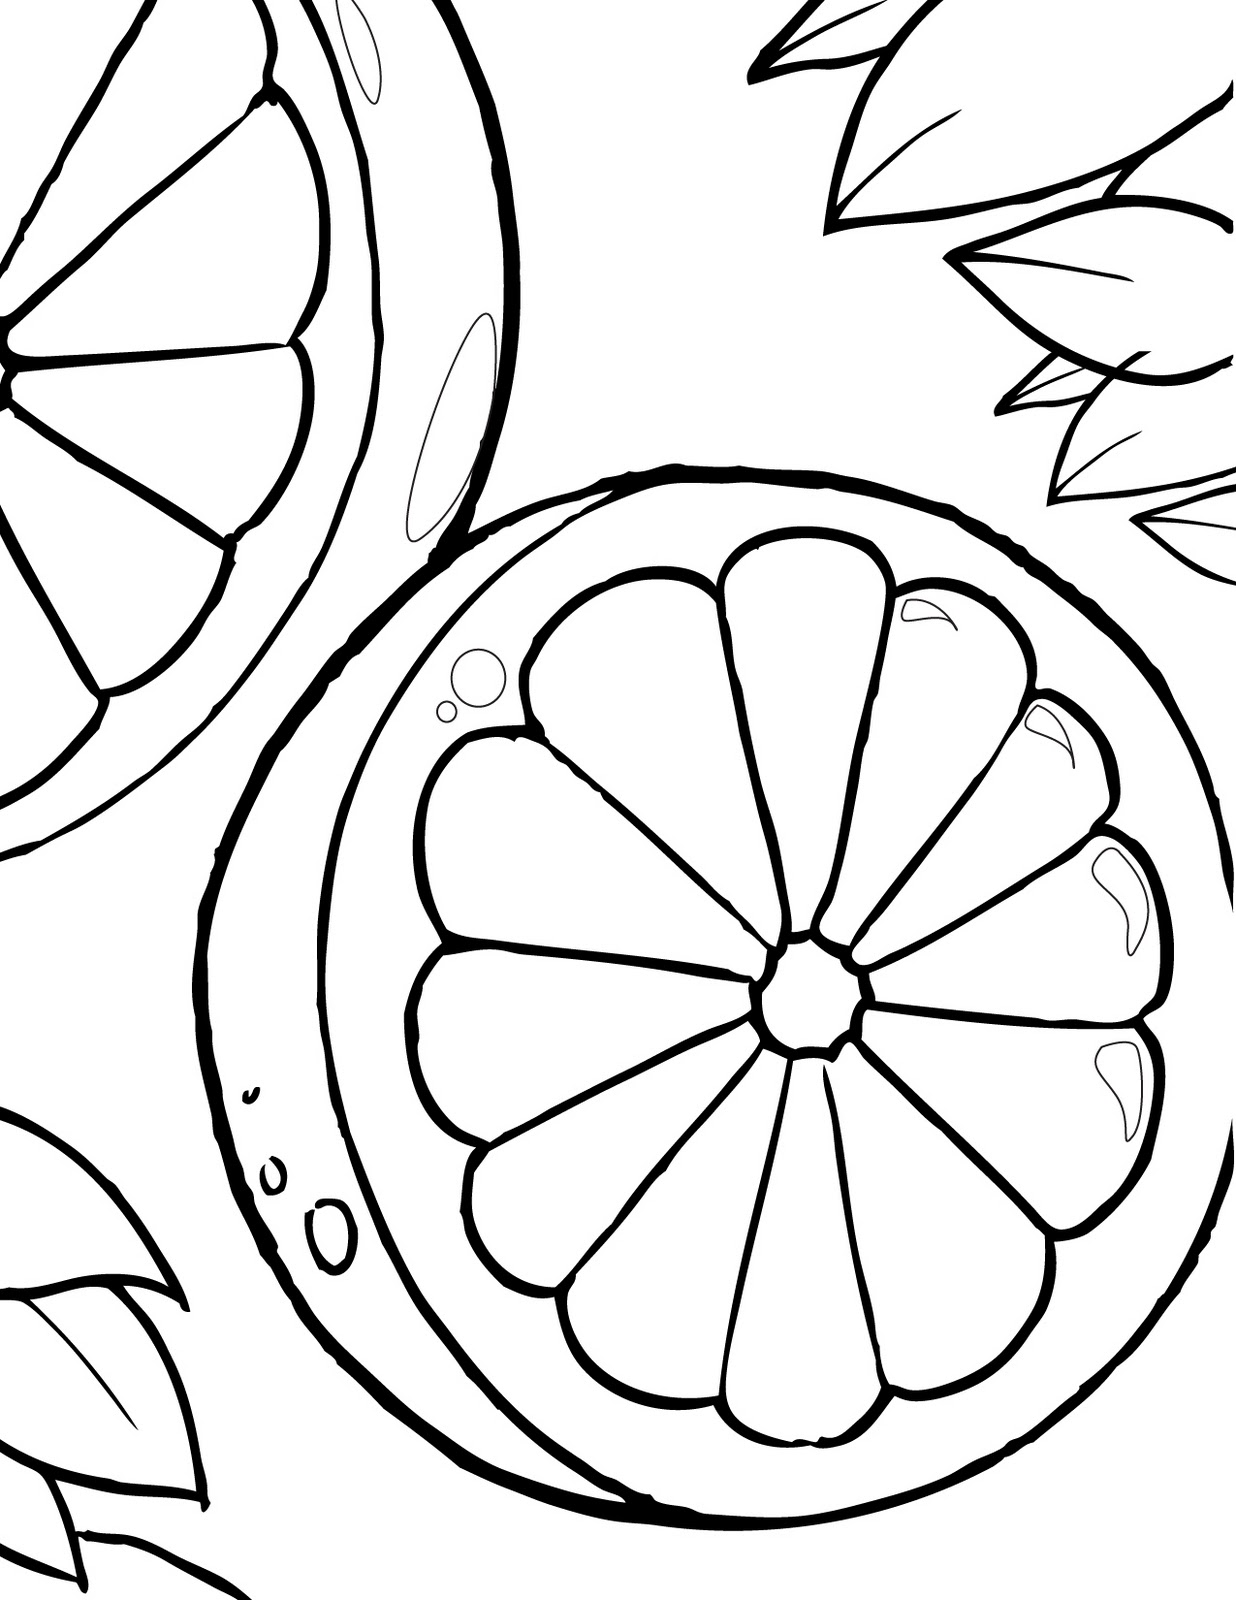 free pictures coloring pages - photo#42